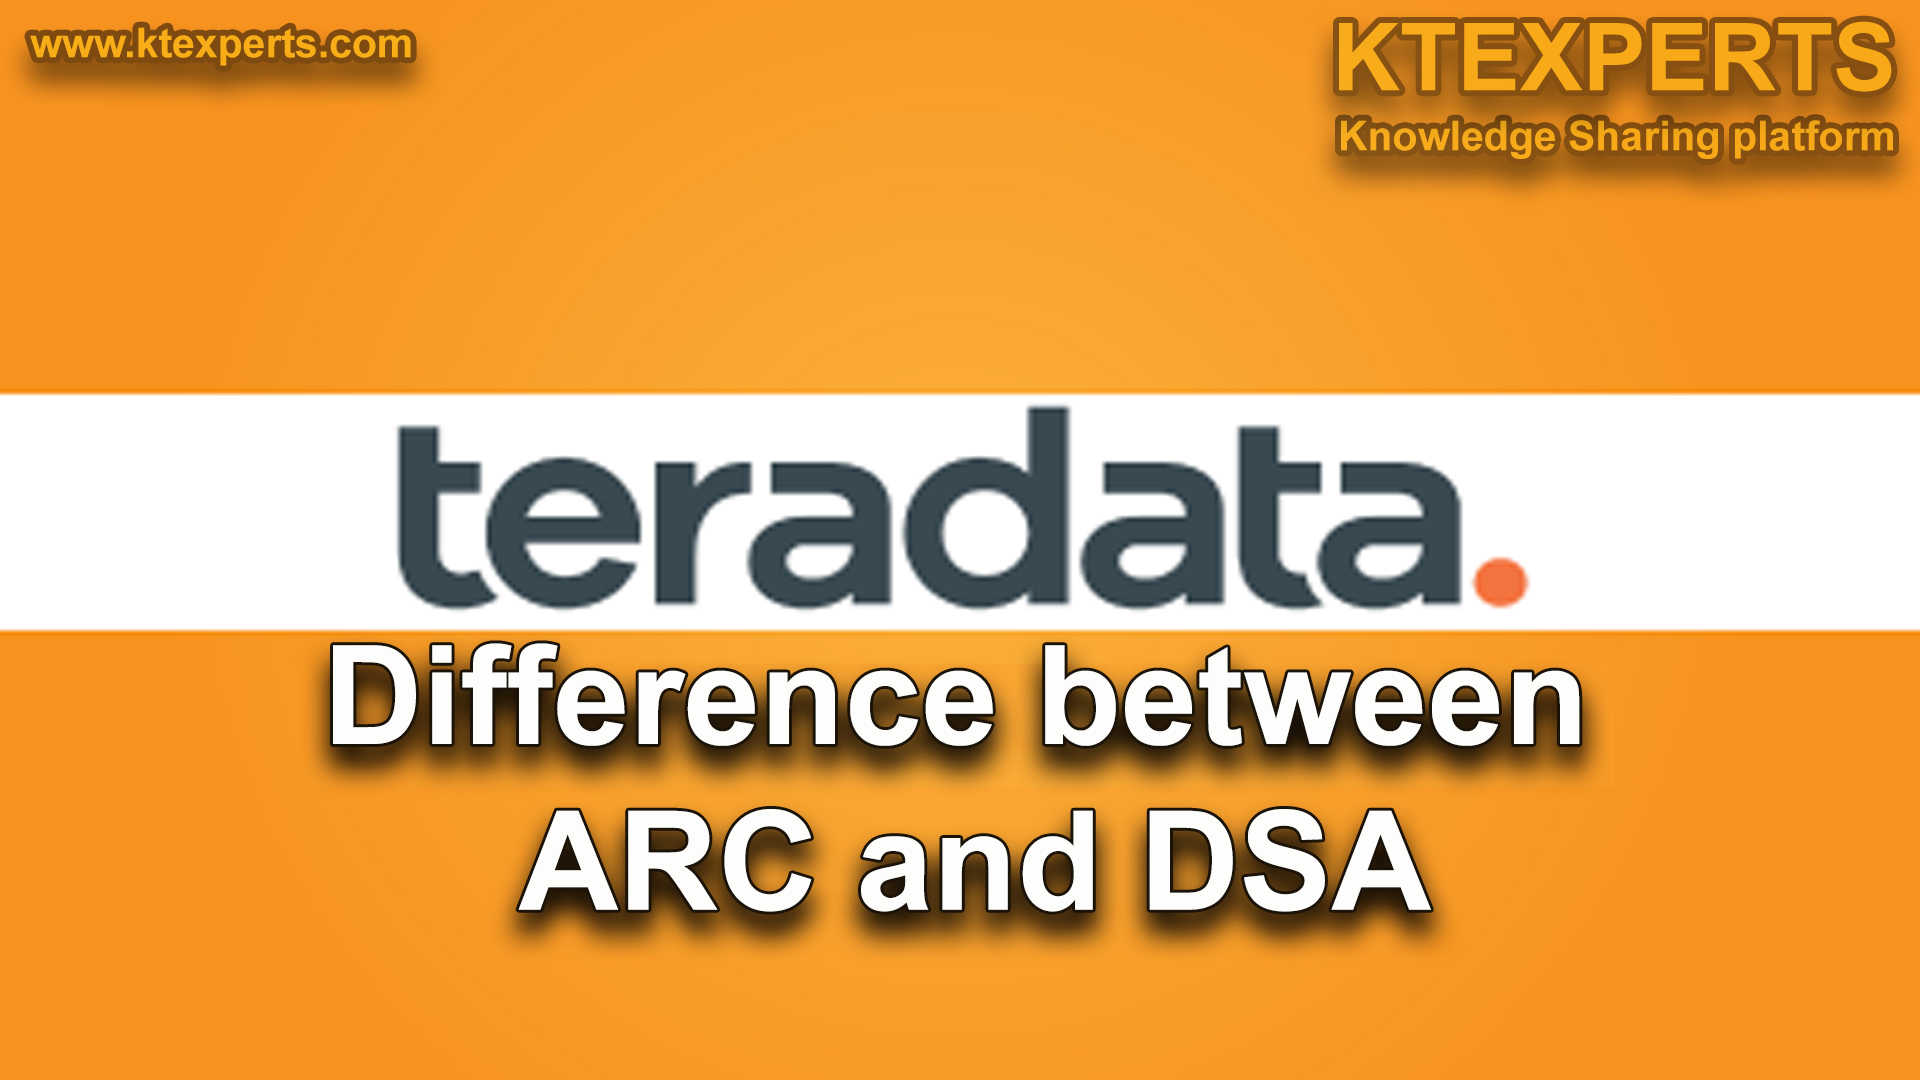 Difference between ARC and DSA